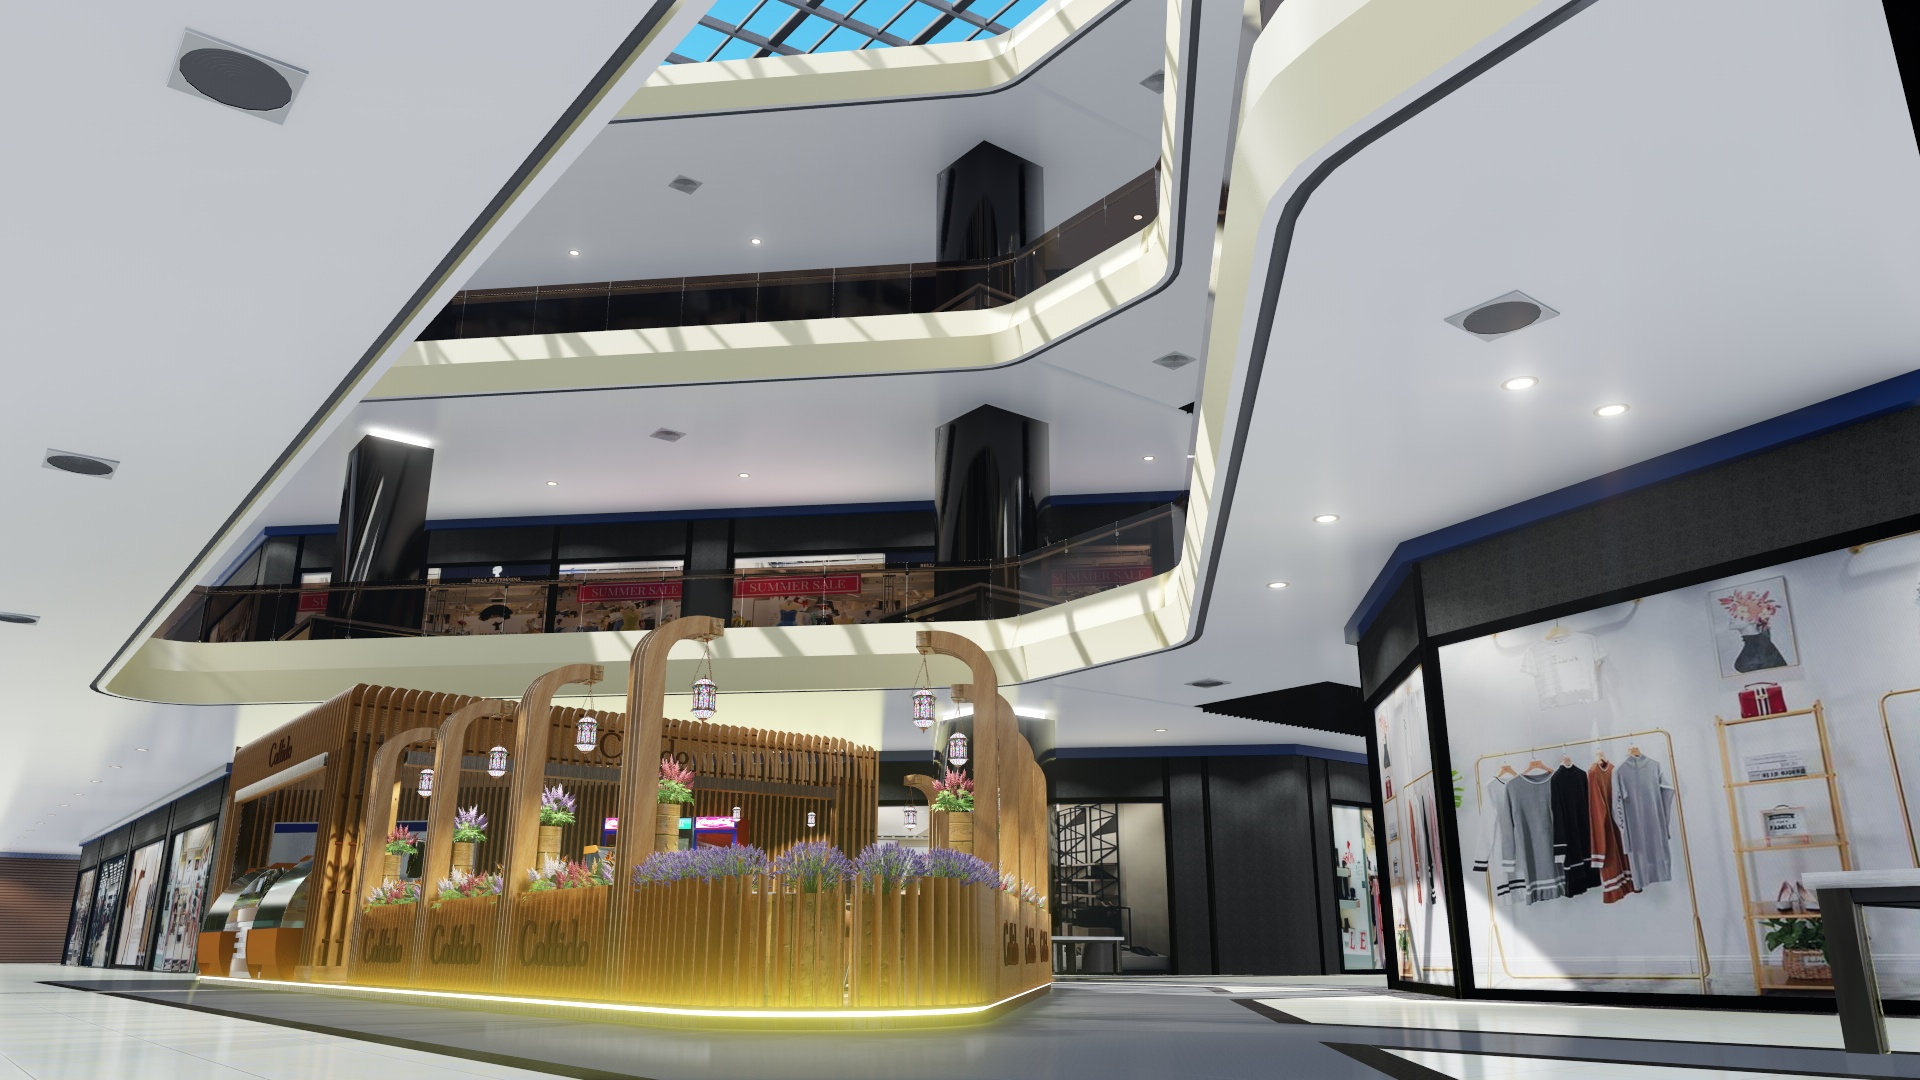 3D Video presentation of the Coffido coffee shop in the next shopping and entertainment center. (Video attached) in Cinema 4d Other image